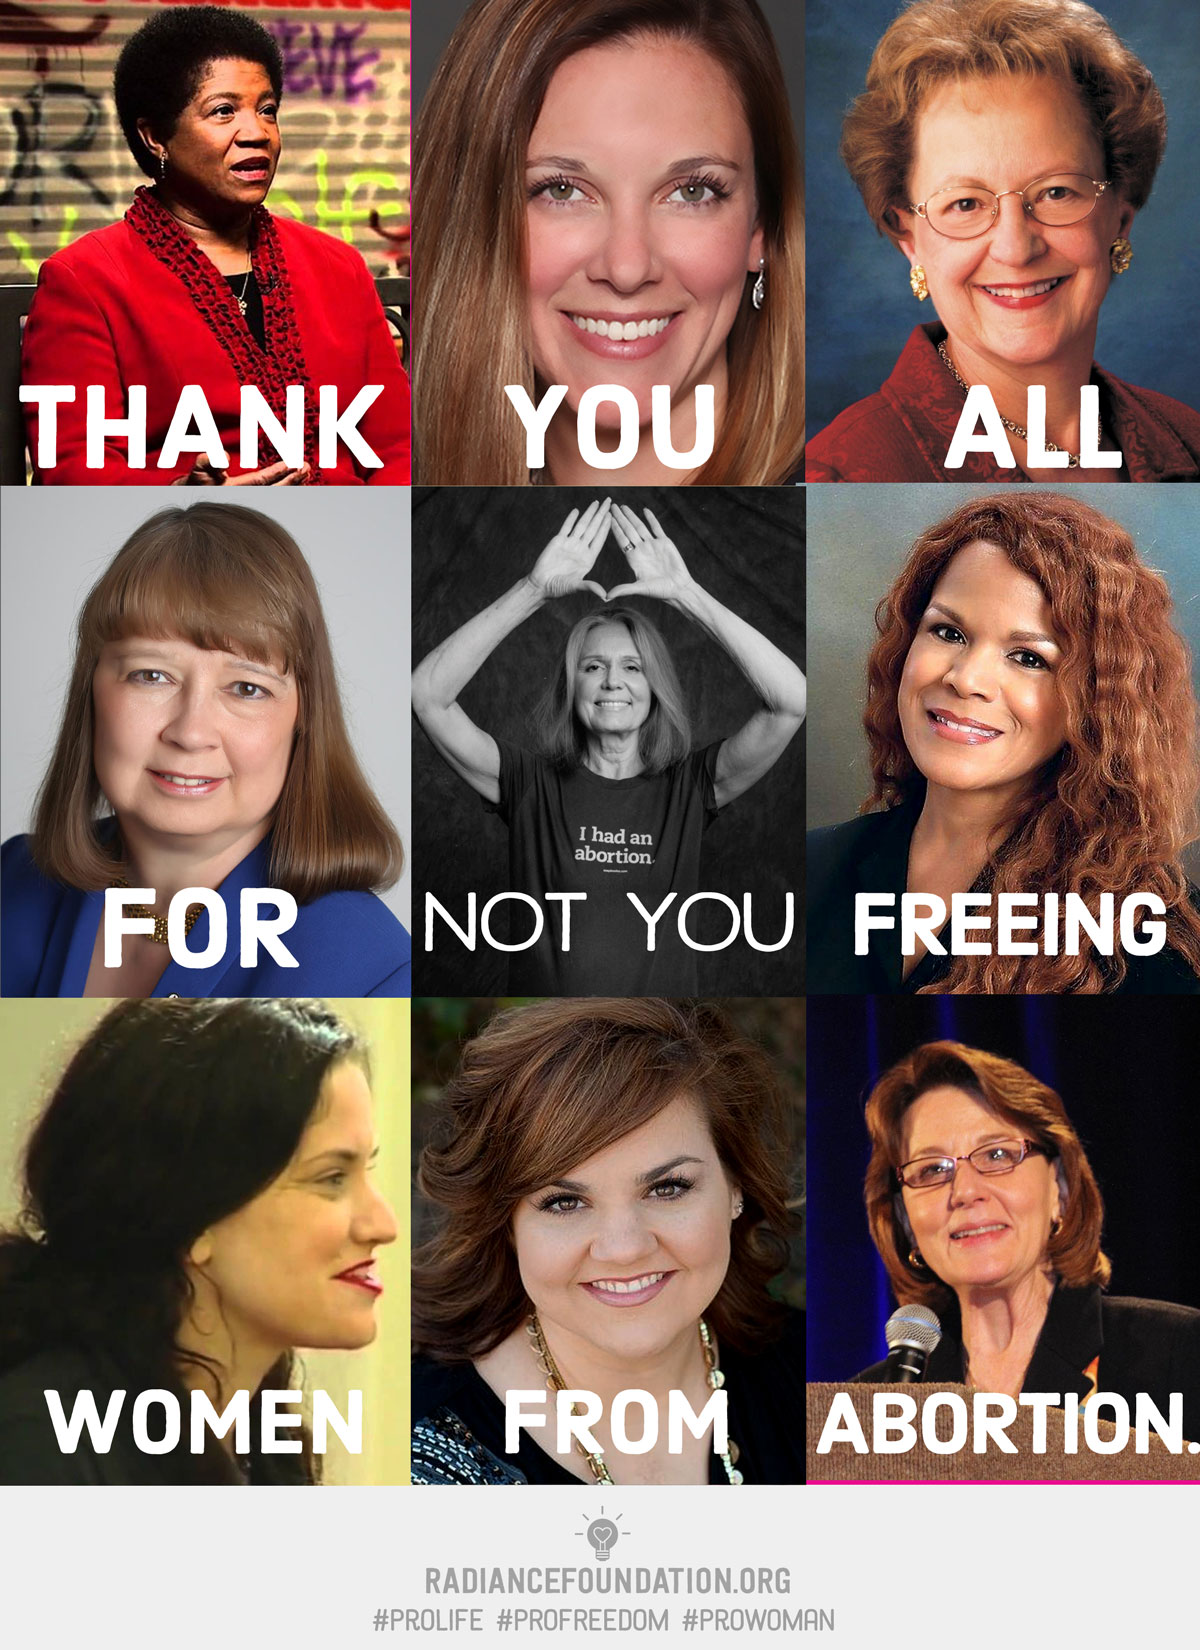 """NOT YOU - Freeing Women From Abortion"" by The Radiance Foundation"